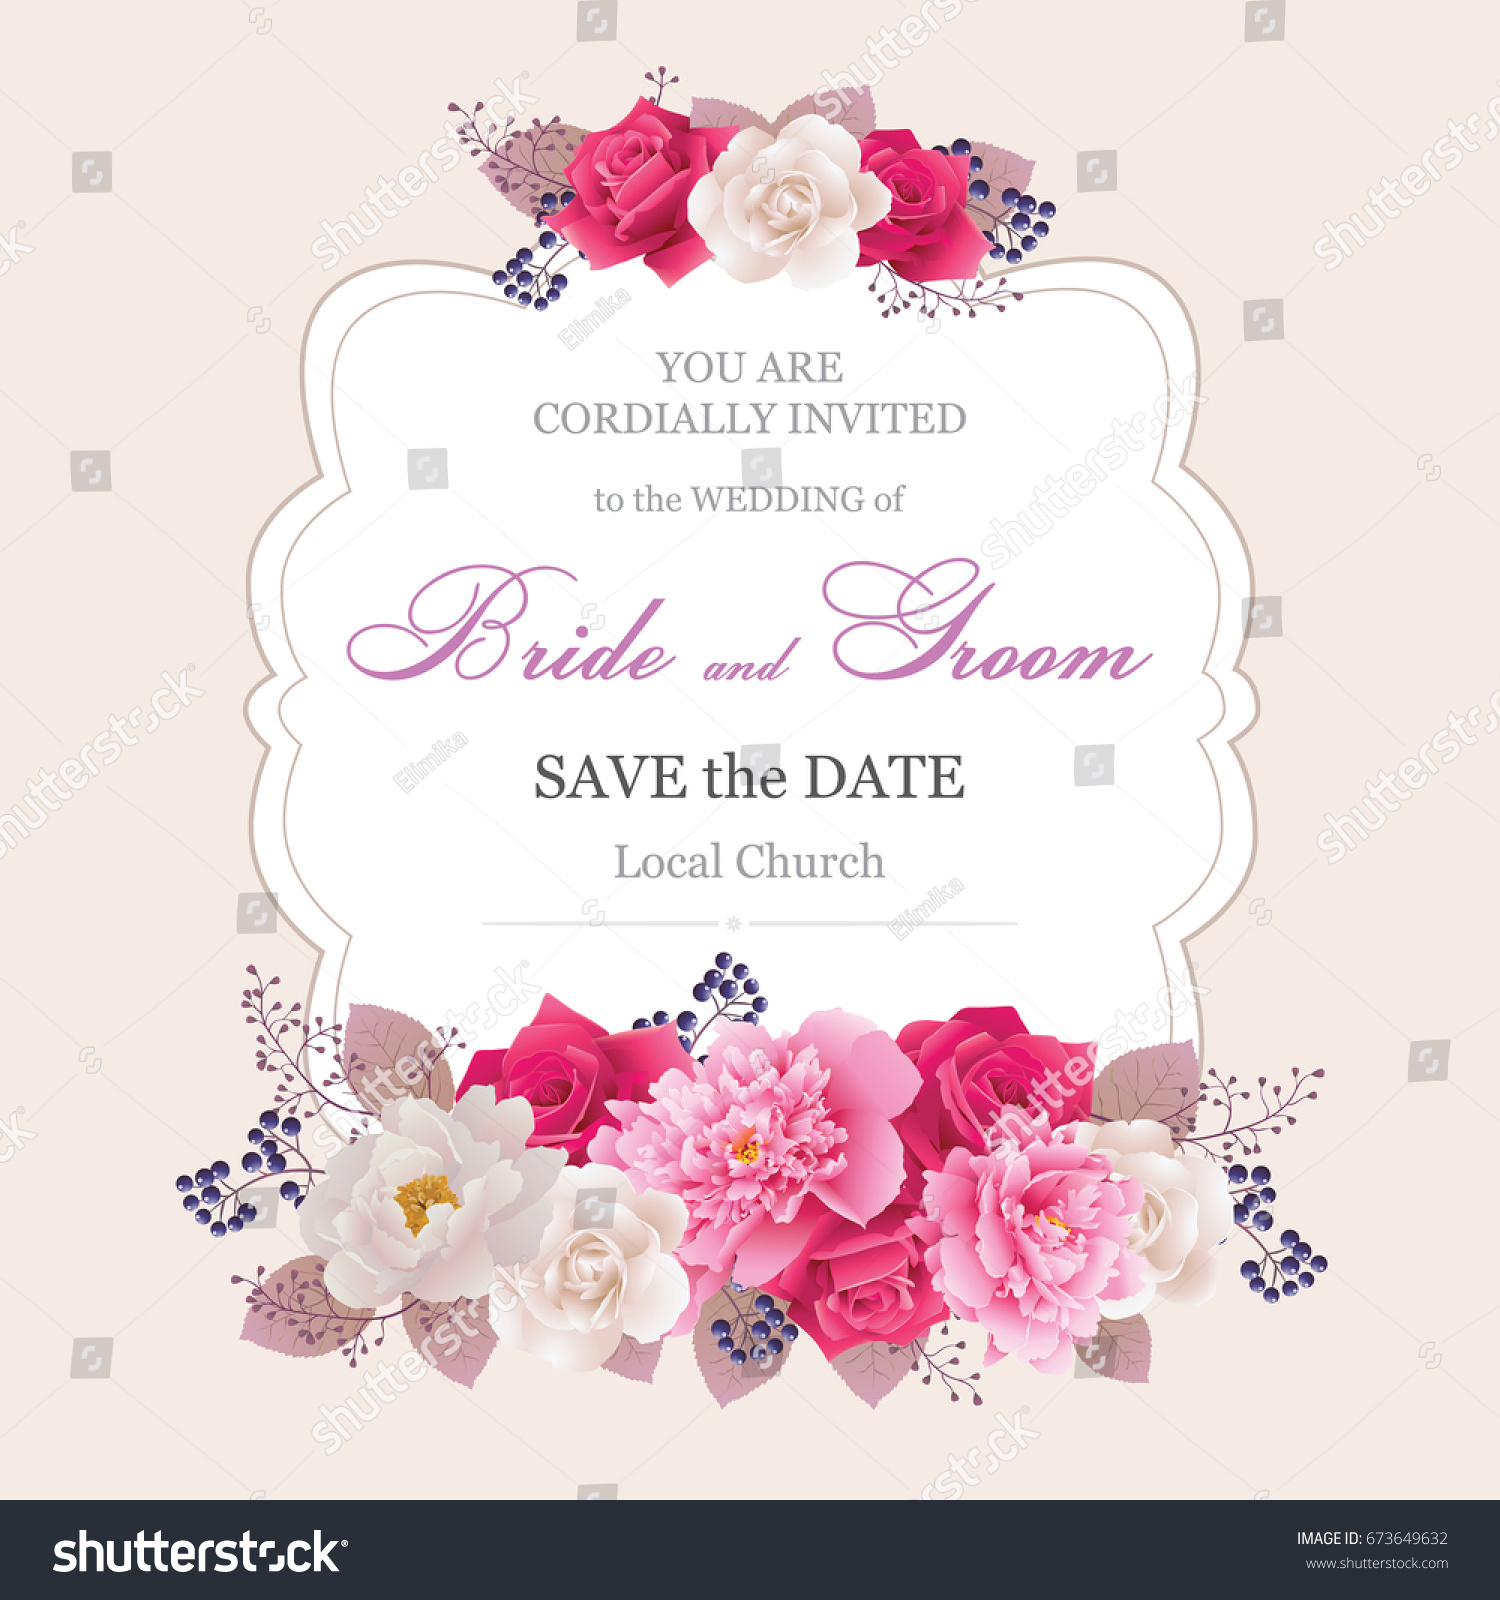 Wedding Invitation Cards Flower Beautiful White Pink Stock Vector ...